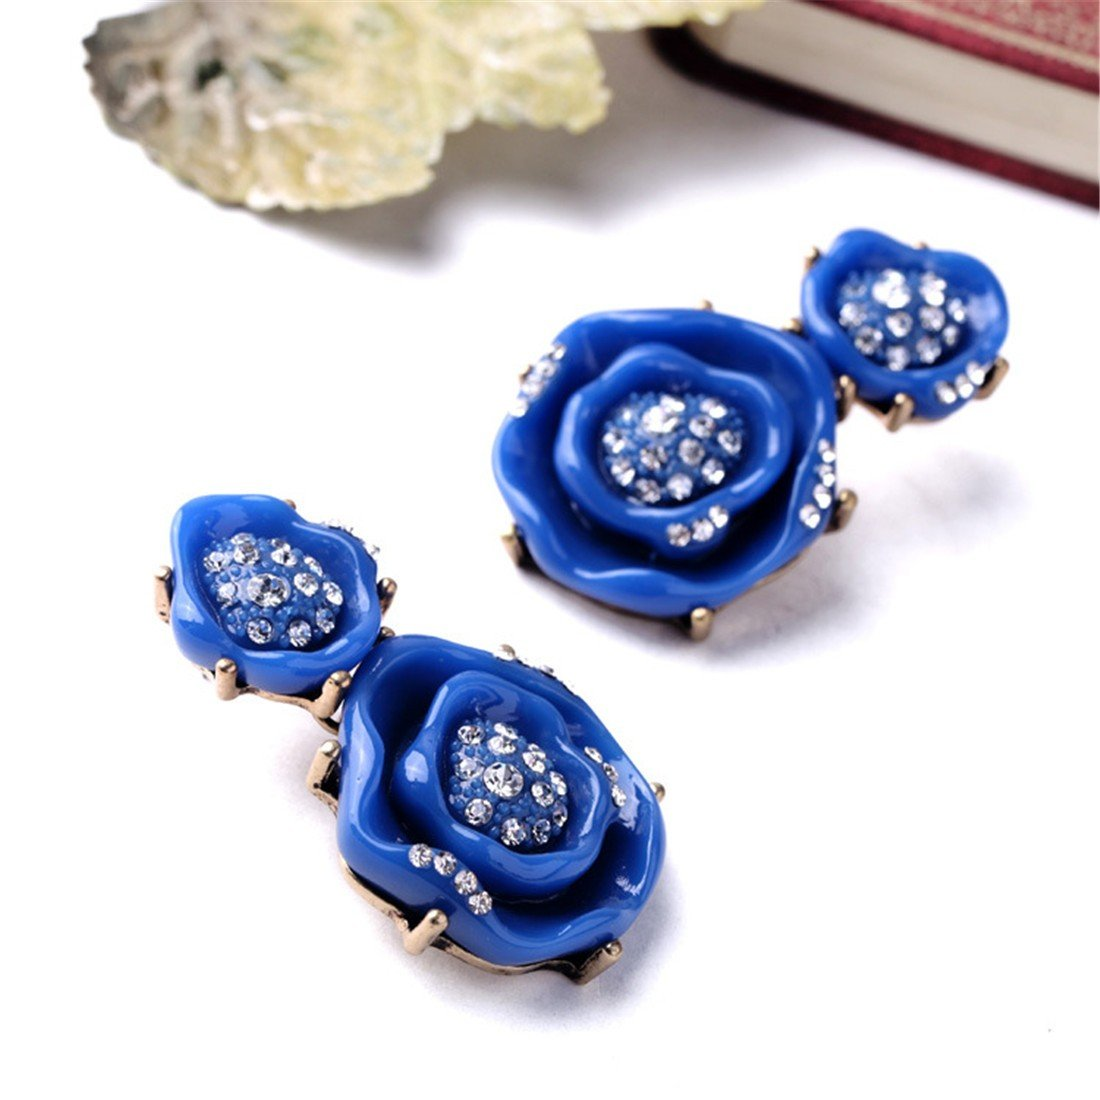 ladies ear studs lovely flowers colorful ball earrings|clip on earrings|ear cuffs|dangle earrings|earring jackets|hoop earrings|stud earrings|European and American fashion